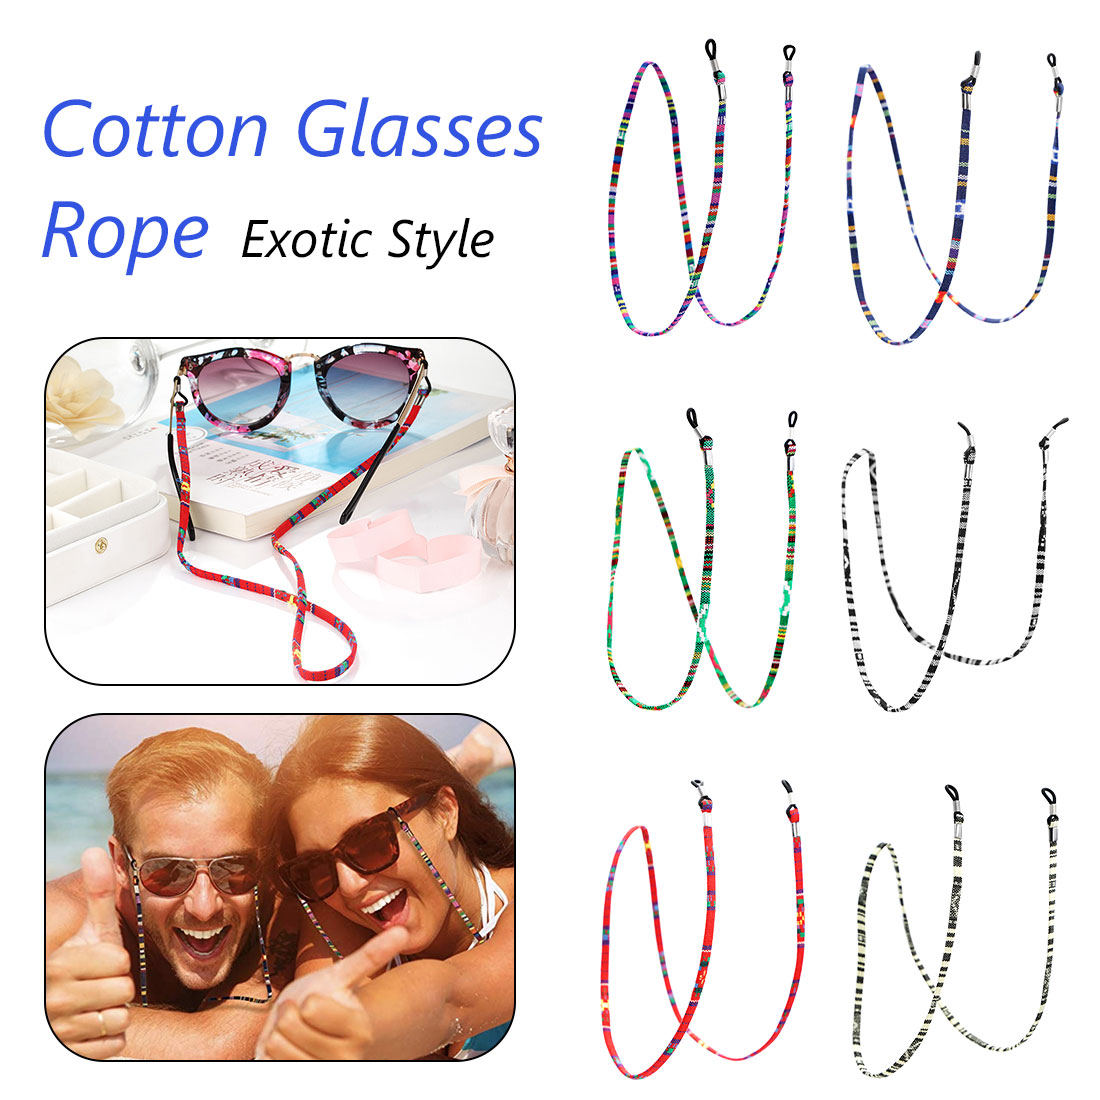 Woven Eyeglasses Chain Reading Glasses Rope Ethnic Style Sunglasses Strap Cord Holder Neck Band Accessories in Eyewear Accessories from Apparel Accessories